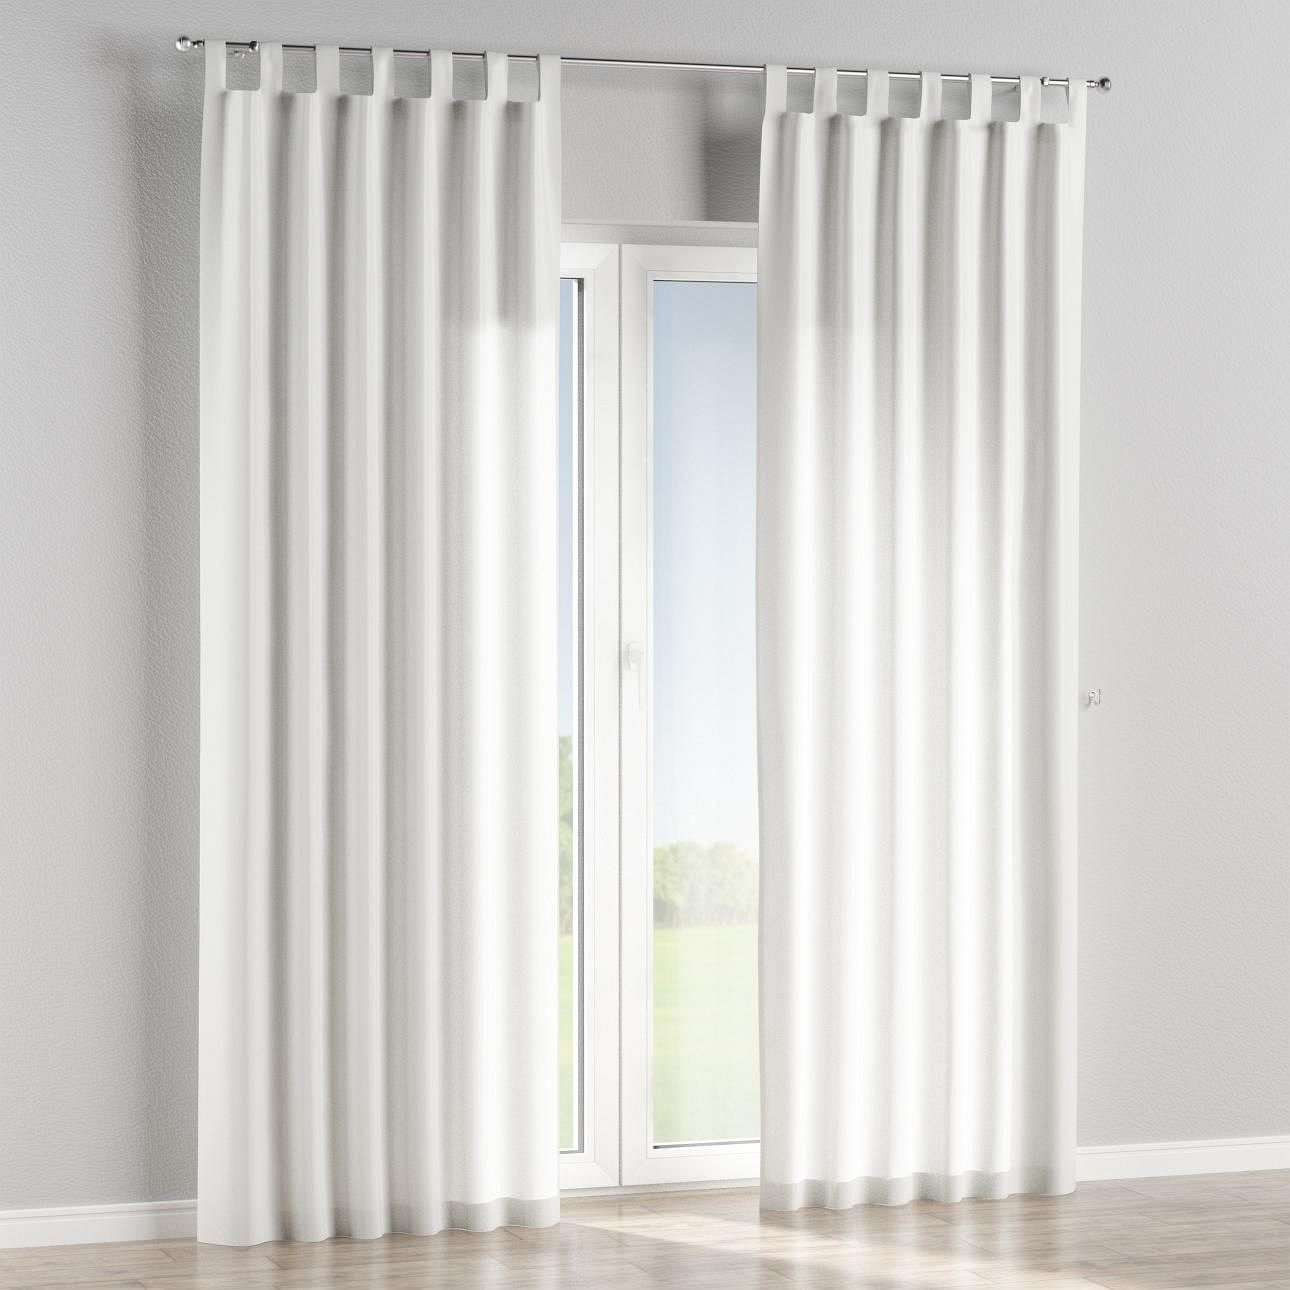 Tab top lined curtains in collection Arcana, fabric: 102-01